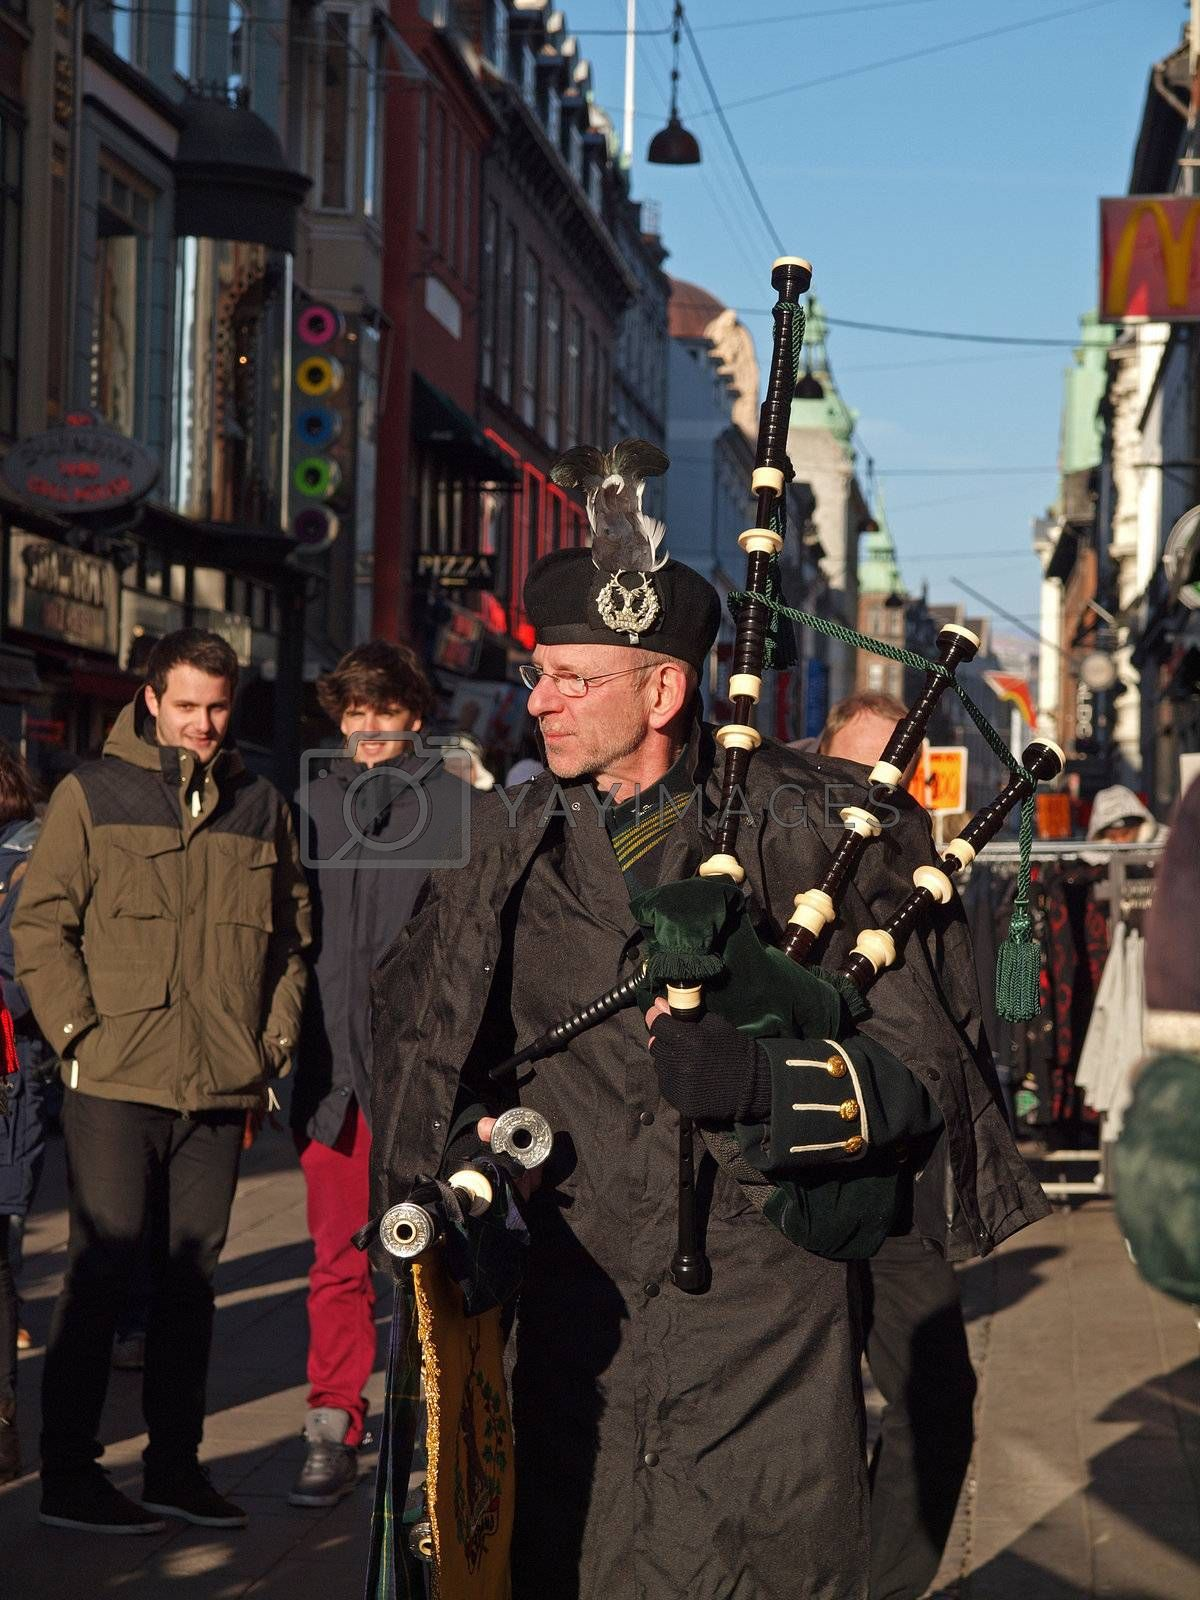 COPENHAGEN - MAR 17: Bagpiper at the annual St. Patrick's Day celebration and parade in front of Copenhagen City Hall, Denmark on March 17, 2013.